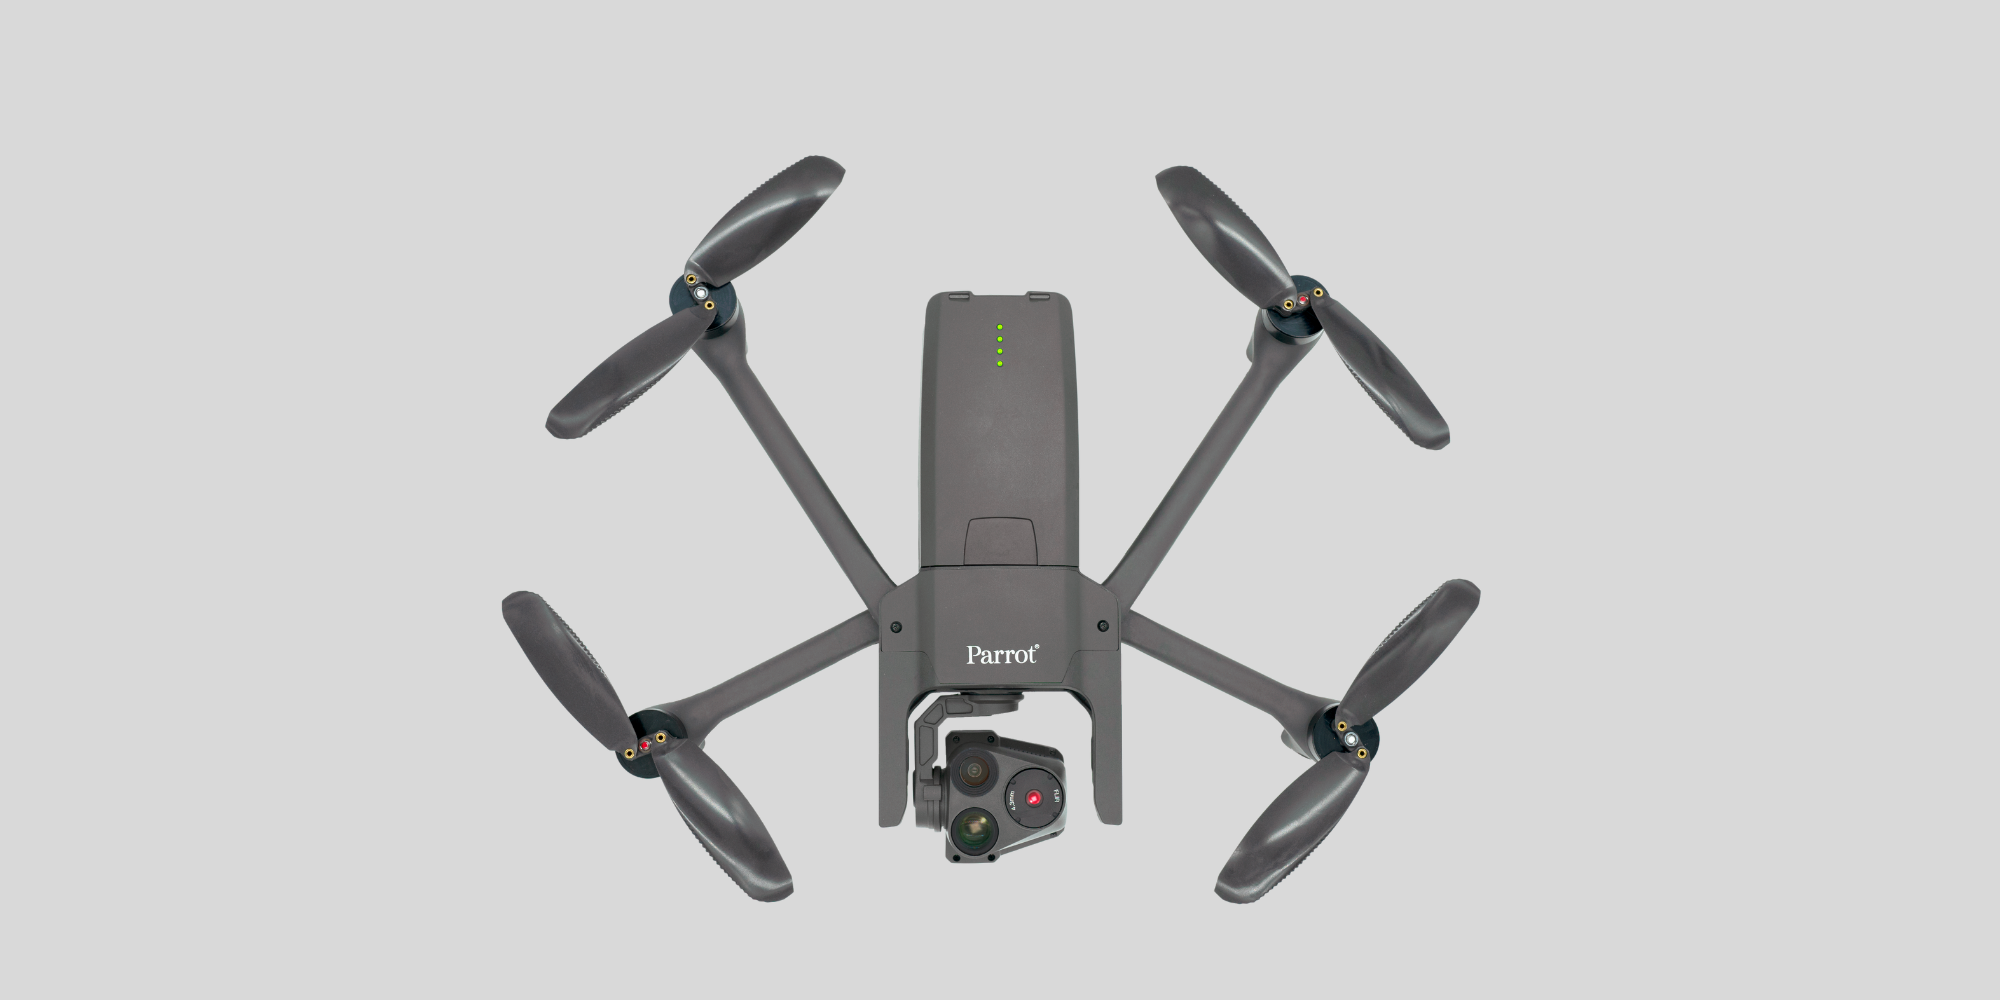 The company hopes the ambitious new drone will find a niche with first responders and enterprise users. It's called the ANAFI USA – a name that to